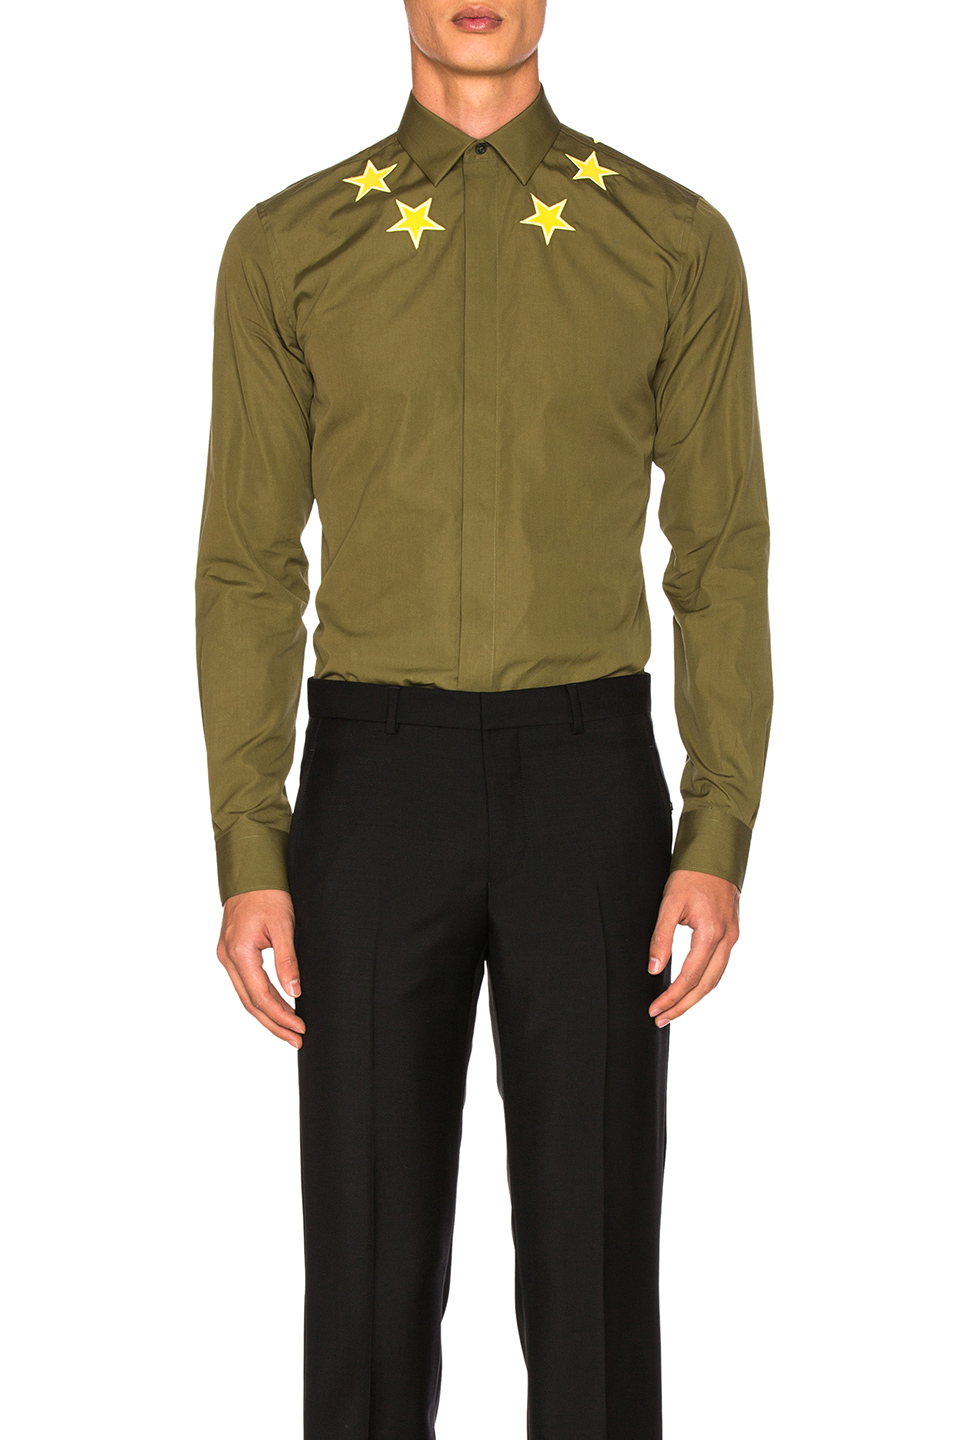 Givenchy Patch Star Shirt in Green